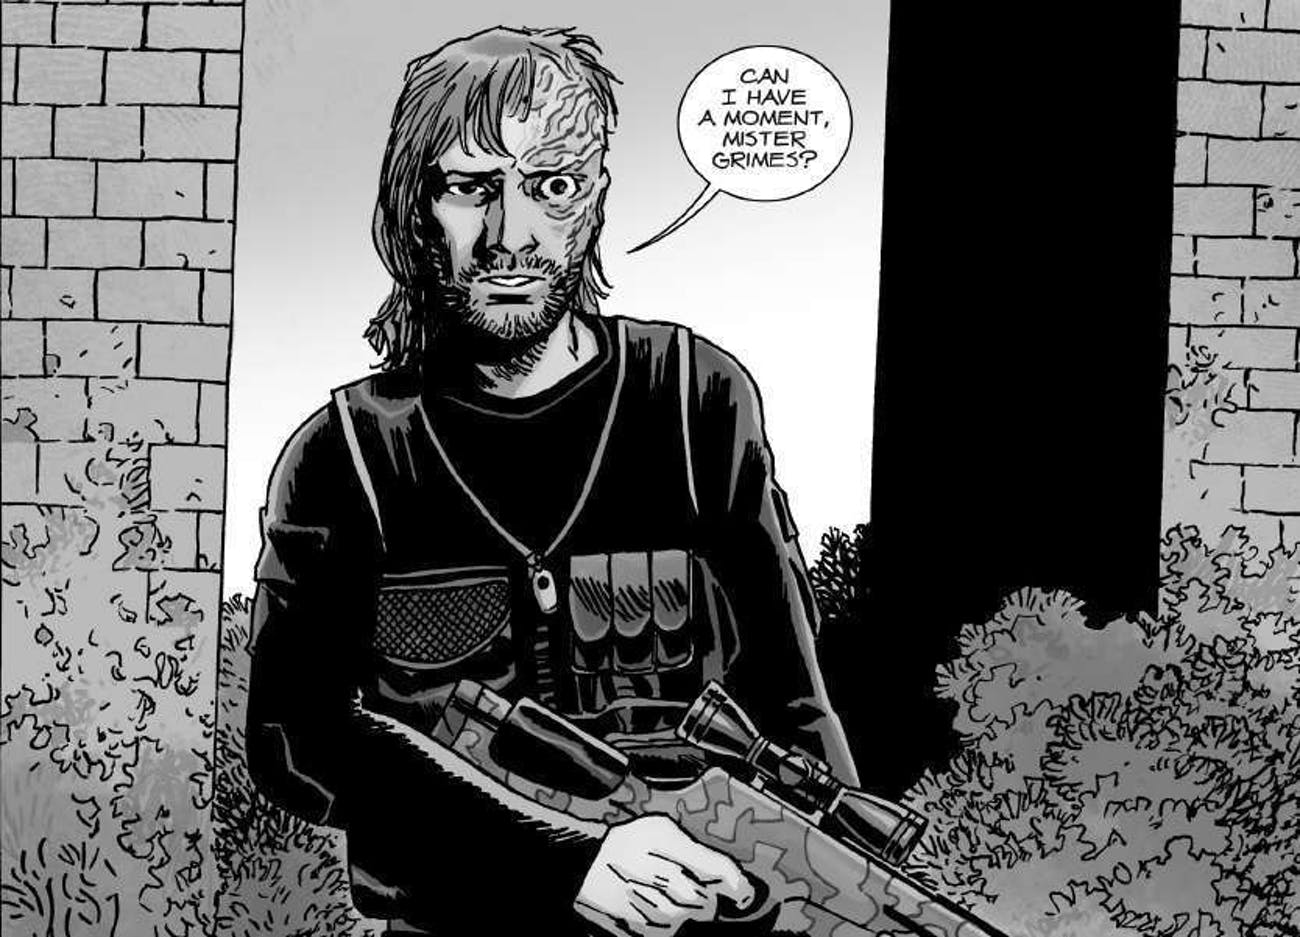 Dwight addresses Rick peacefully in 'The Walking Dead' comics